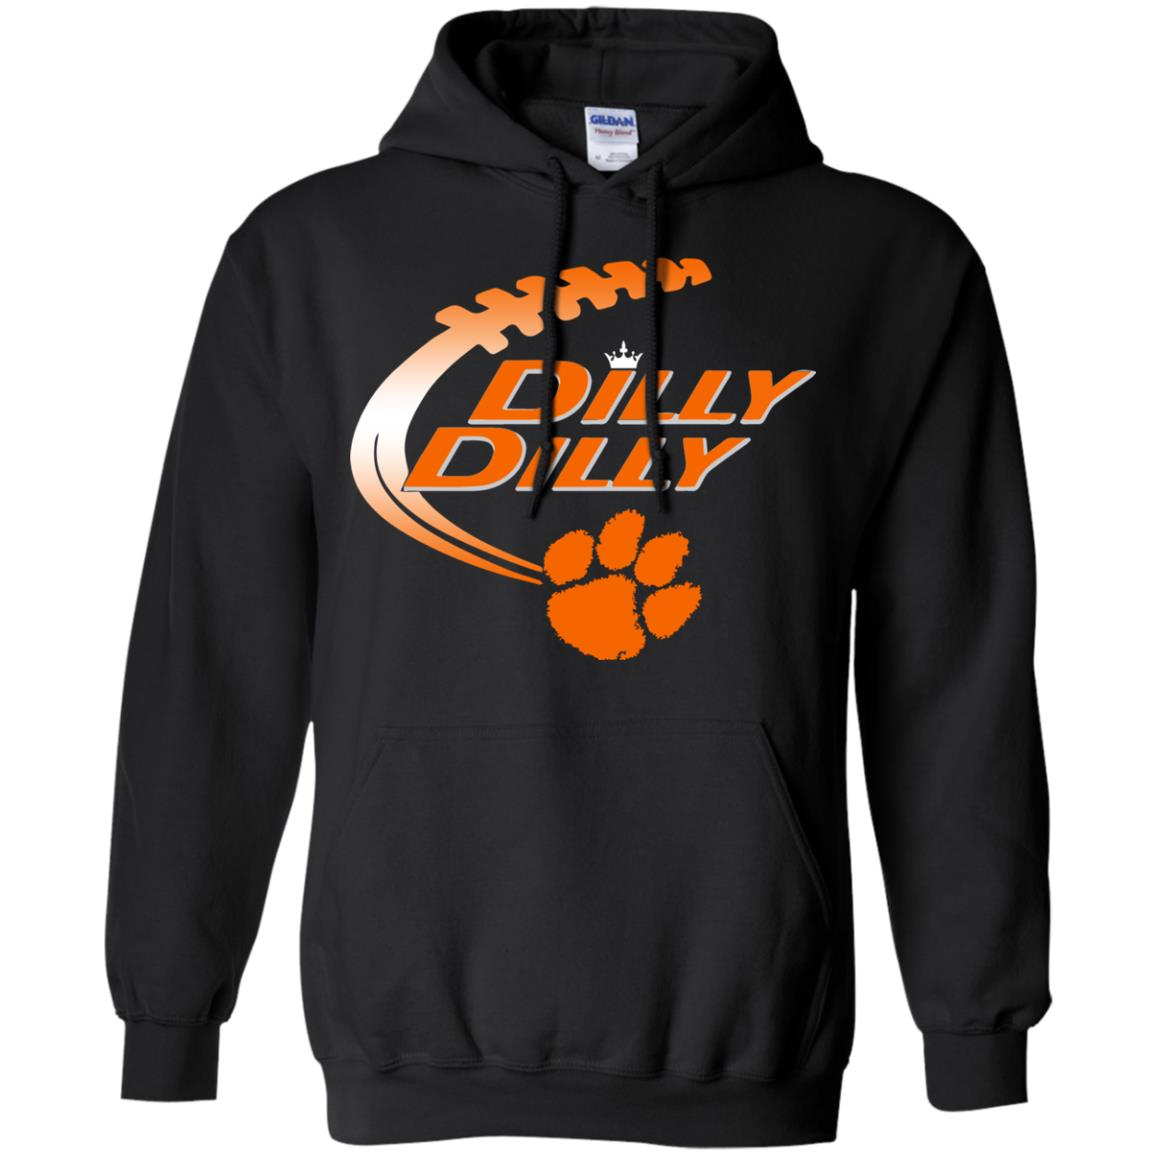 image 1456 - Dilly Dilly Clemson Tigers shirt & sweatshirt